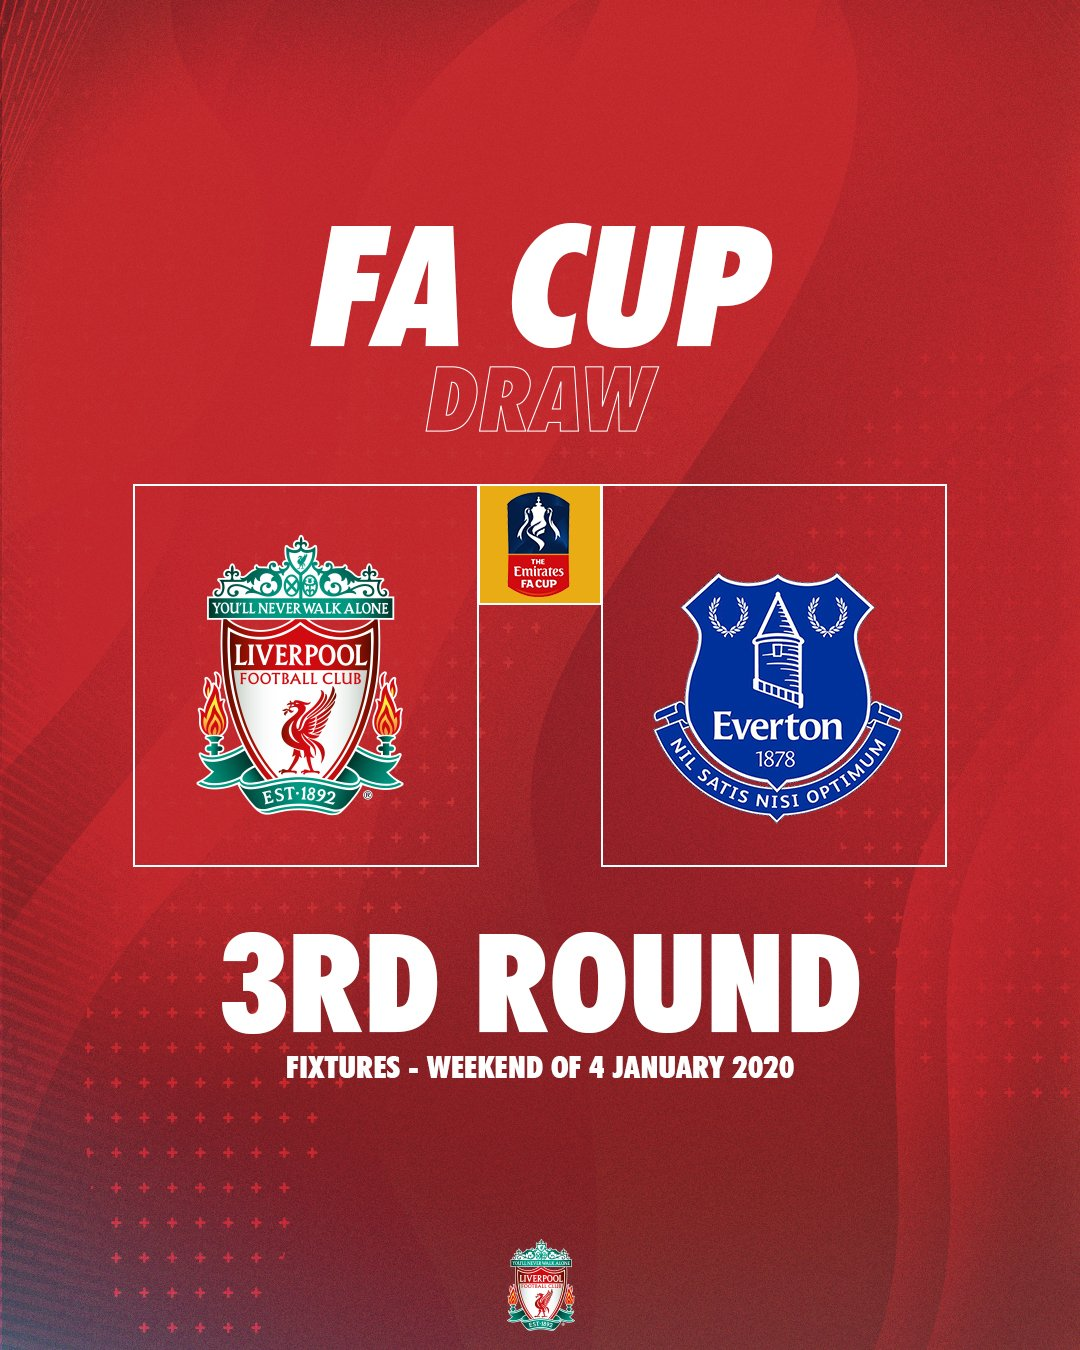 We will face @Everton in the FA Cup third round   #FACupDraw https://t.co/RpkiHATziL